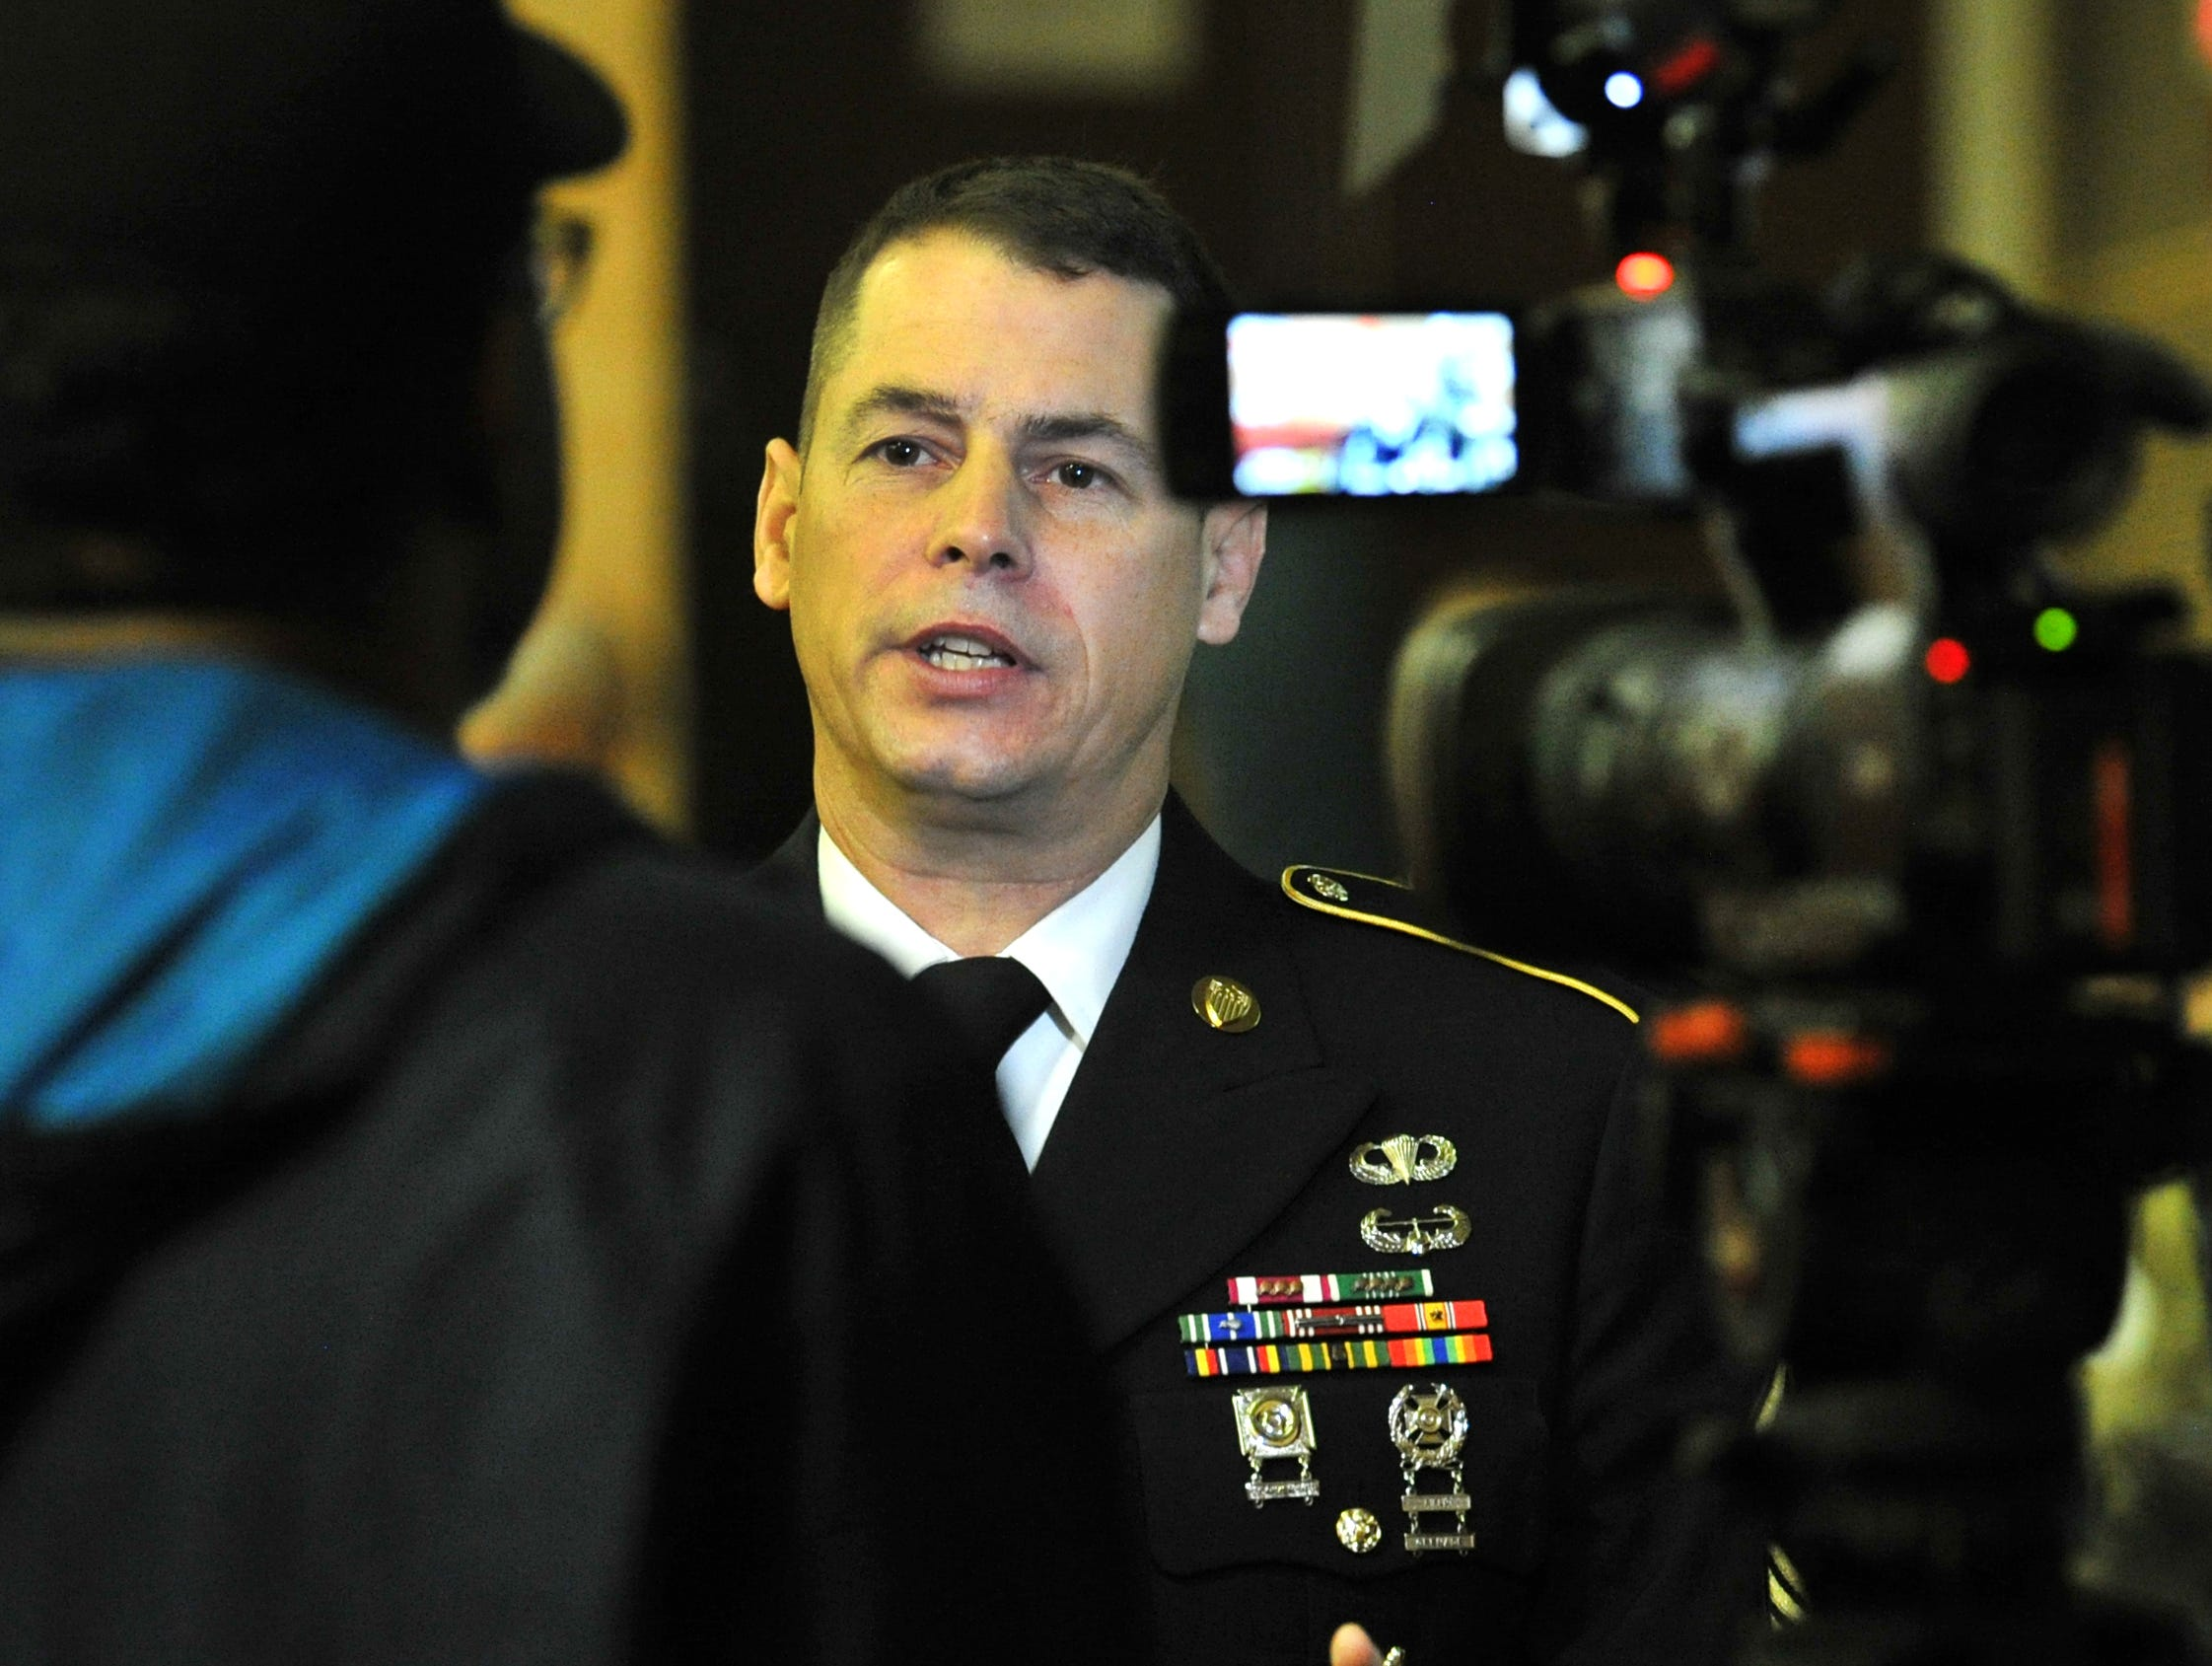 Command Sergeant Major, Steve Laick, a Hirschi High School graduate,  conducted media interviews after speaking to junior and senior students at Hirschi High School about their career choices after school.